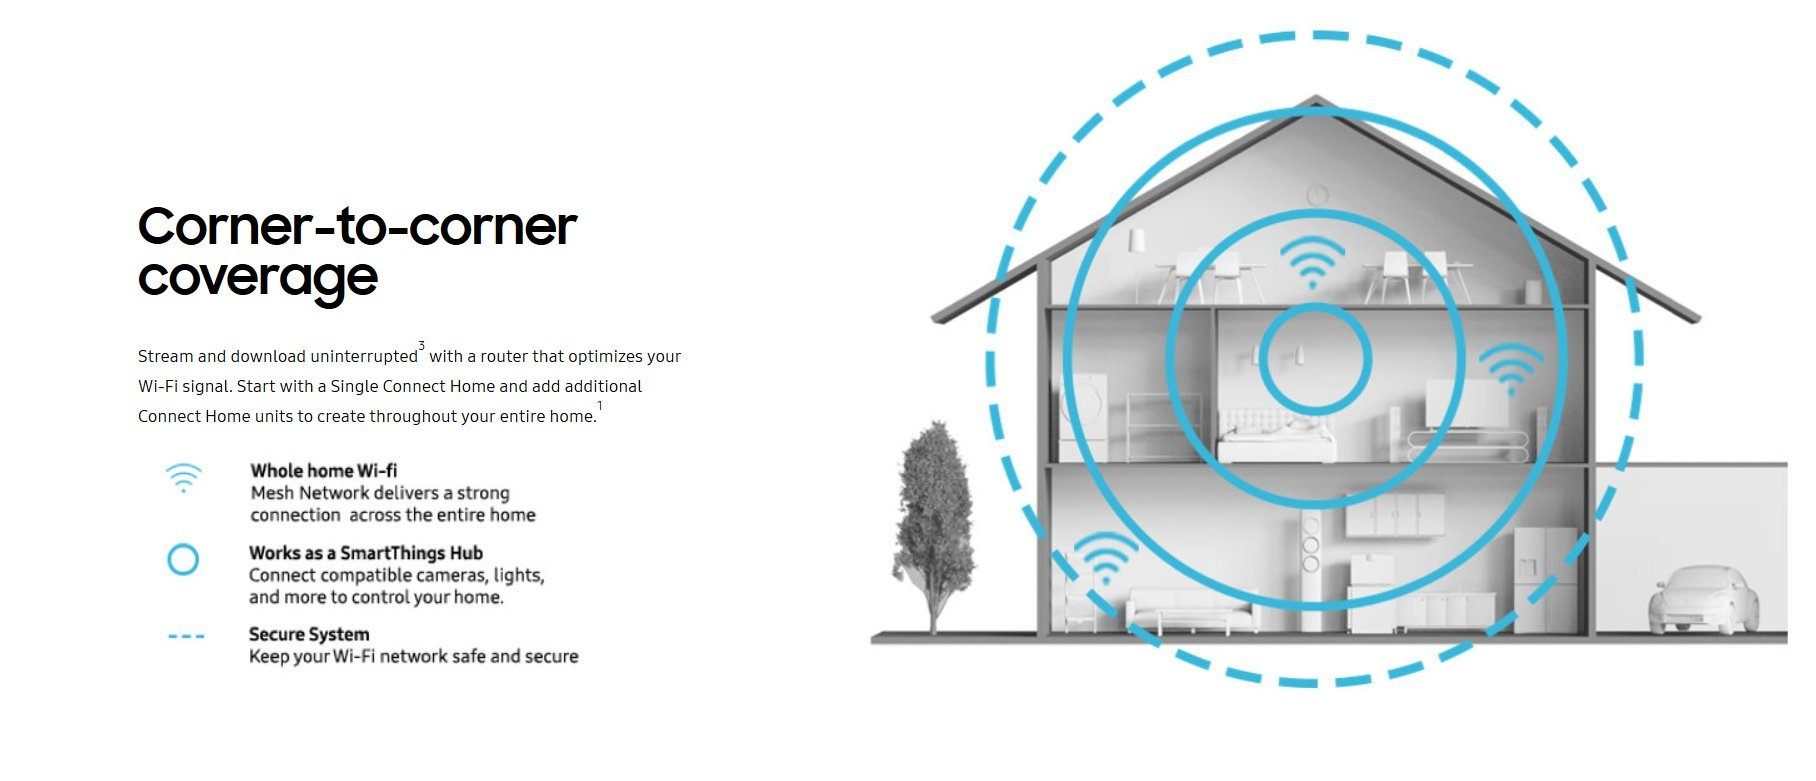 Samsung Connect Home AC1300 Smart Wi-Fi System (3-Pack), Works as a SmartThings Hub by Samsung (Image #6)